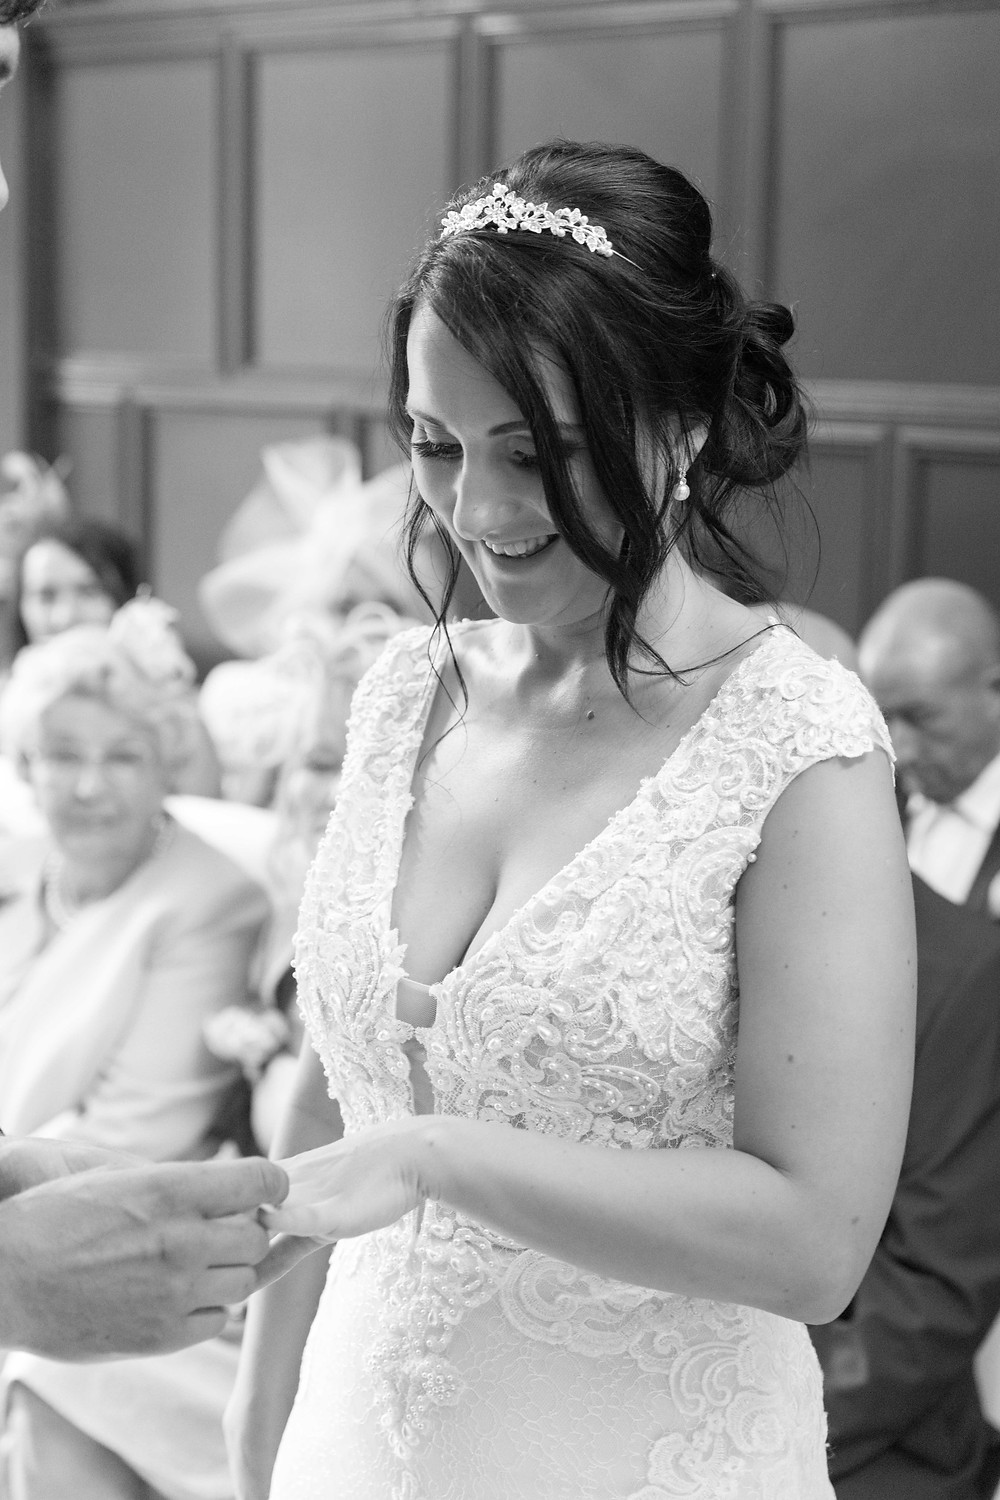 The bride during the ceremony by North yorkshire photographer